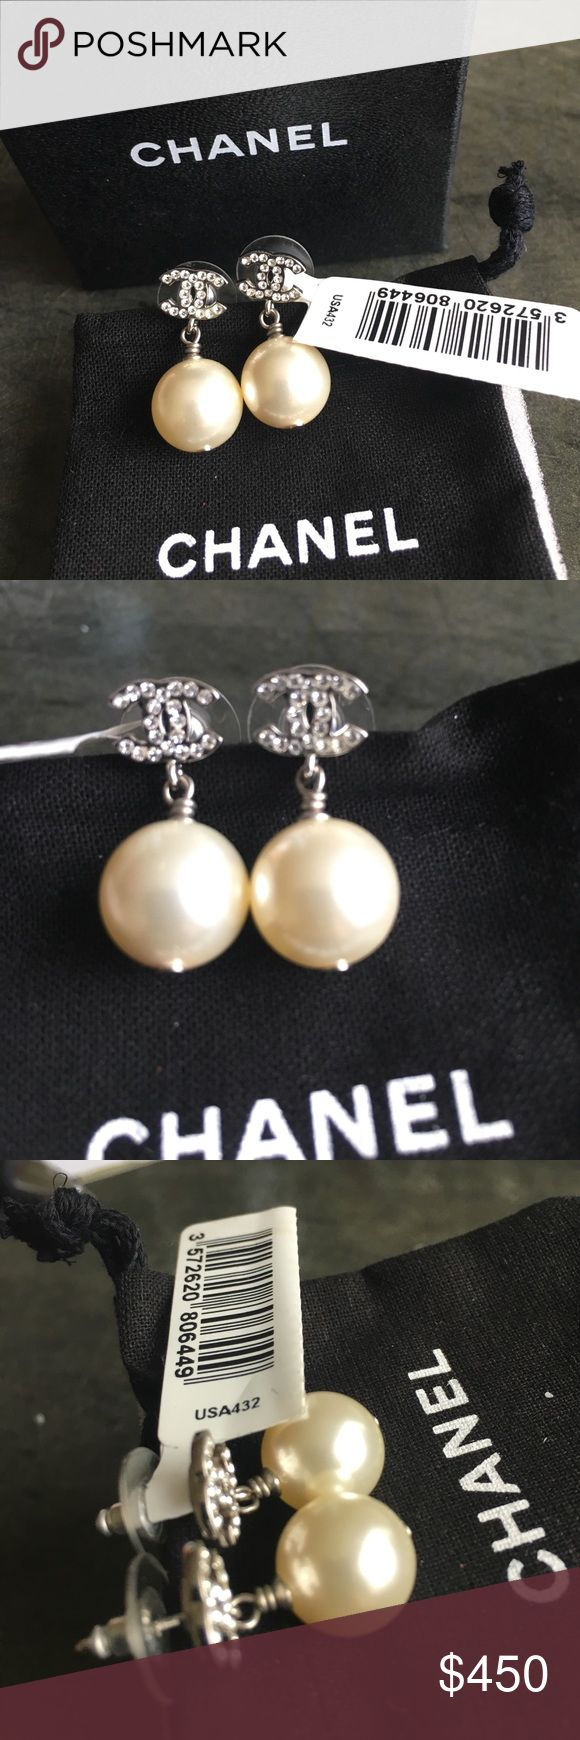 """Chanel Earrings Authentic Chanel Studded CC's Pearl Drop Earrings.  Brand new.  Tags included.  Earrings measure approximately 1"""" from top to bottom.  Earrings are from Chanel Costume jewelry collection 12C A36138YO2005.  Chanel box and dust pouch included.  Classic Chanel makes even a t-shirt stunning. CHANEL Jewelry Earrings"""